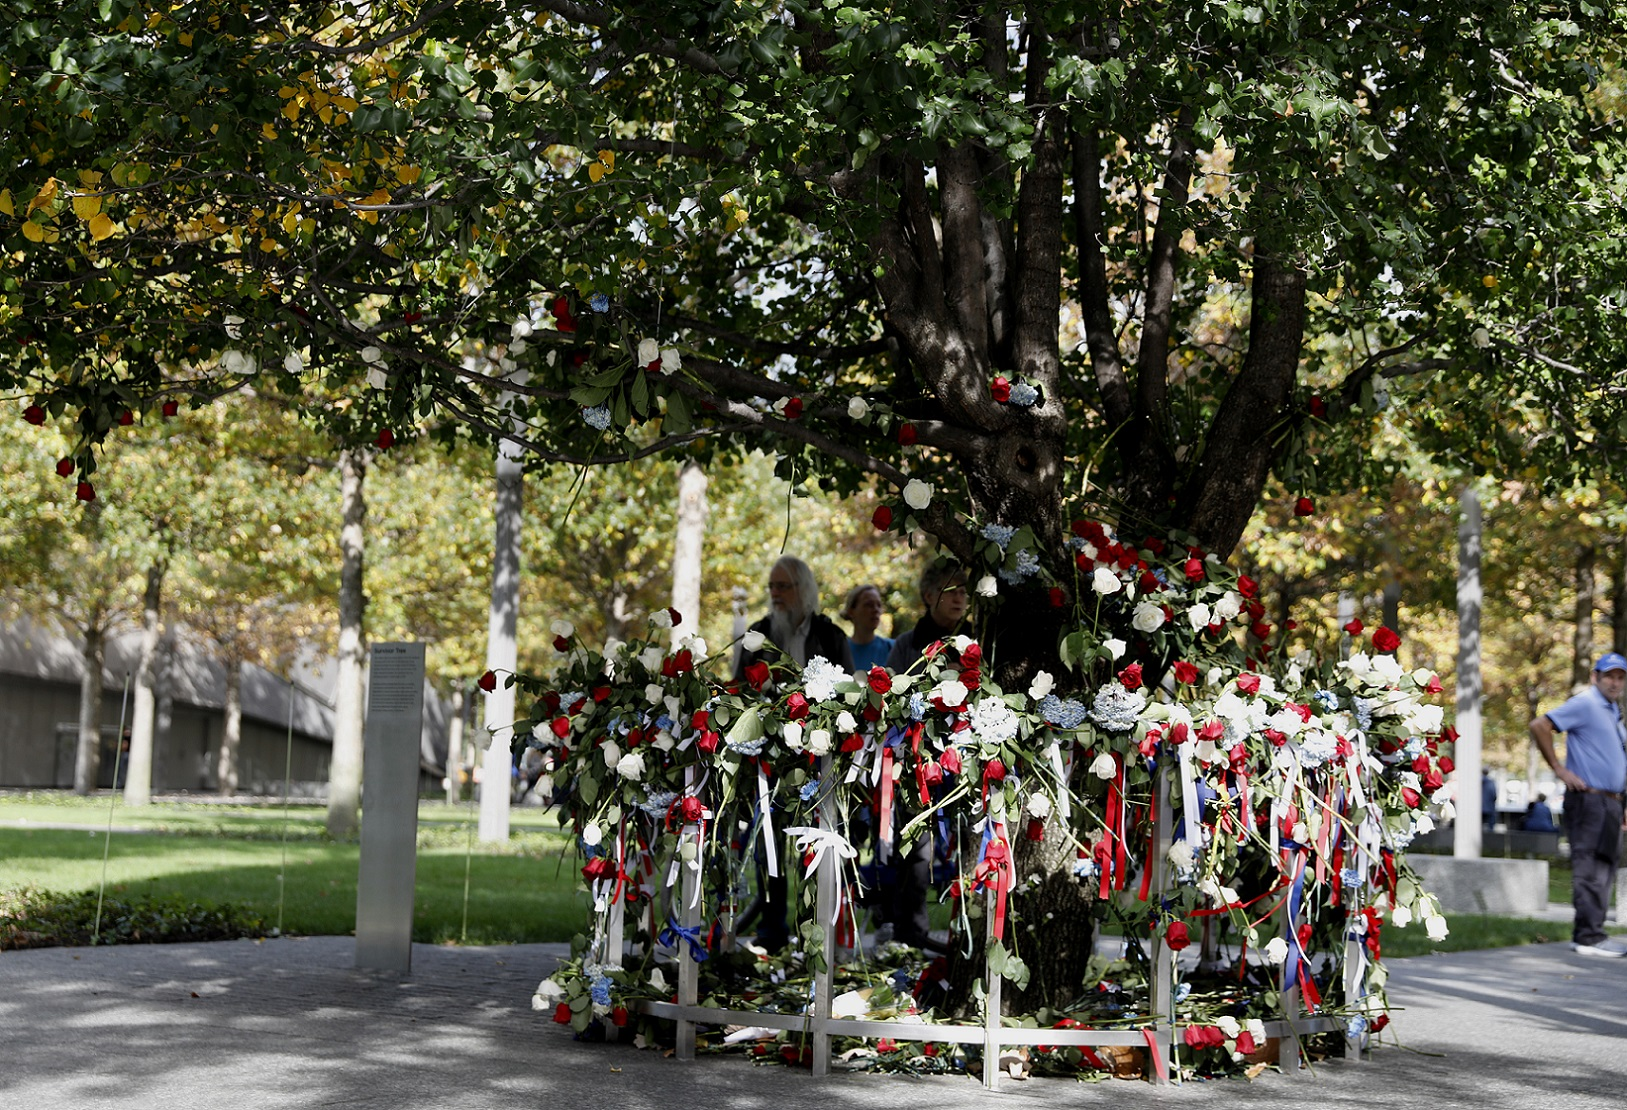 A Callery pear tree known as the Survivor Tree is adorned with red, white, and blue ribbons and flowers on a fall day.